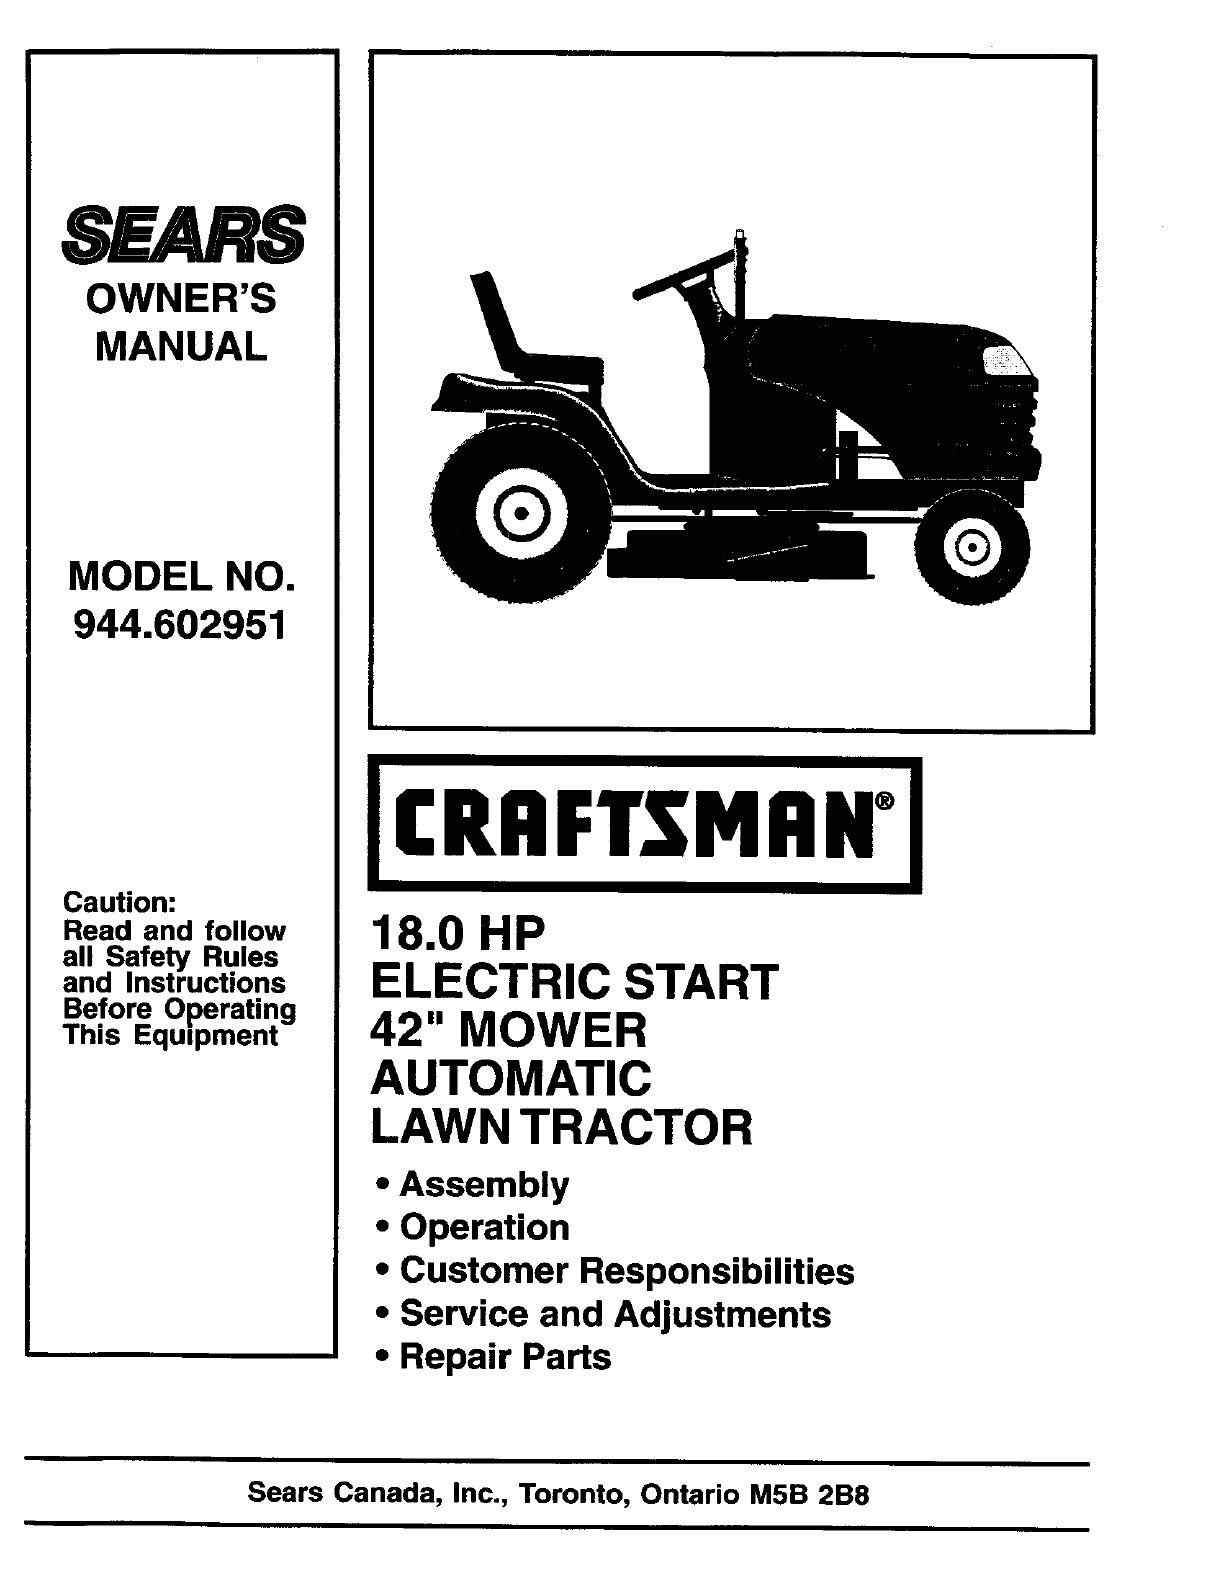 Craftsman Riding Lawn Mower Parts Diagram | Automotive ...